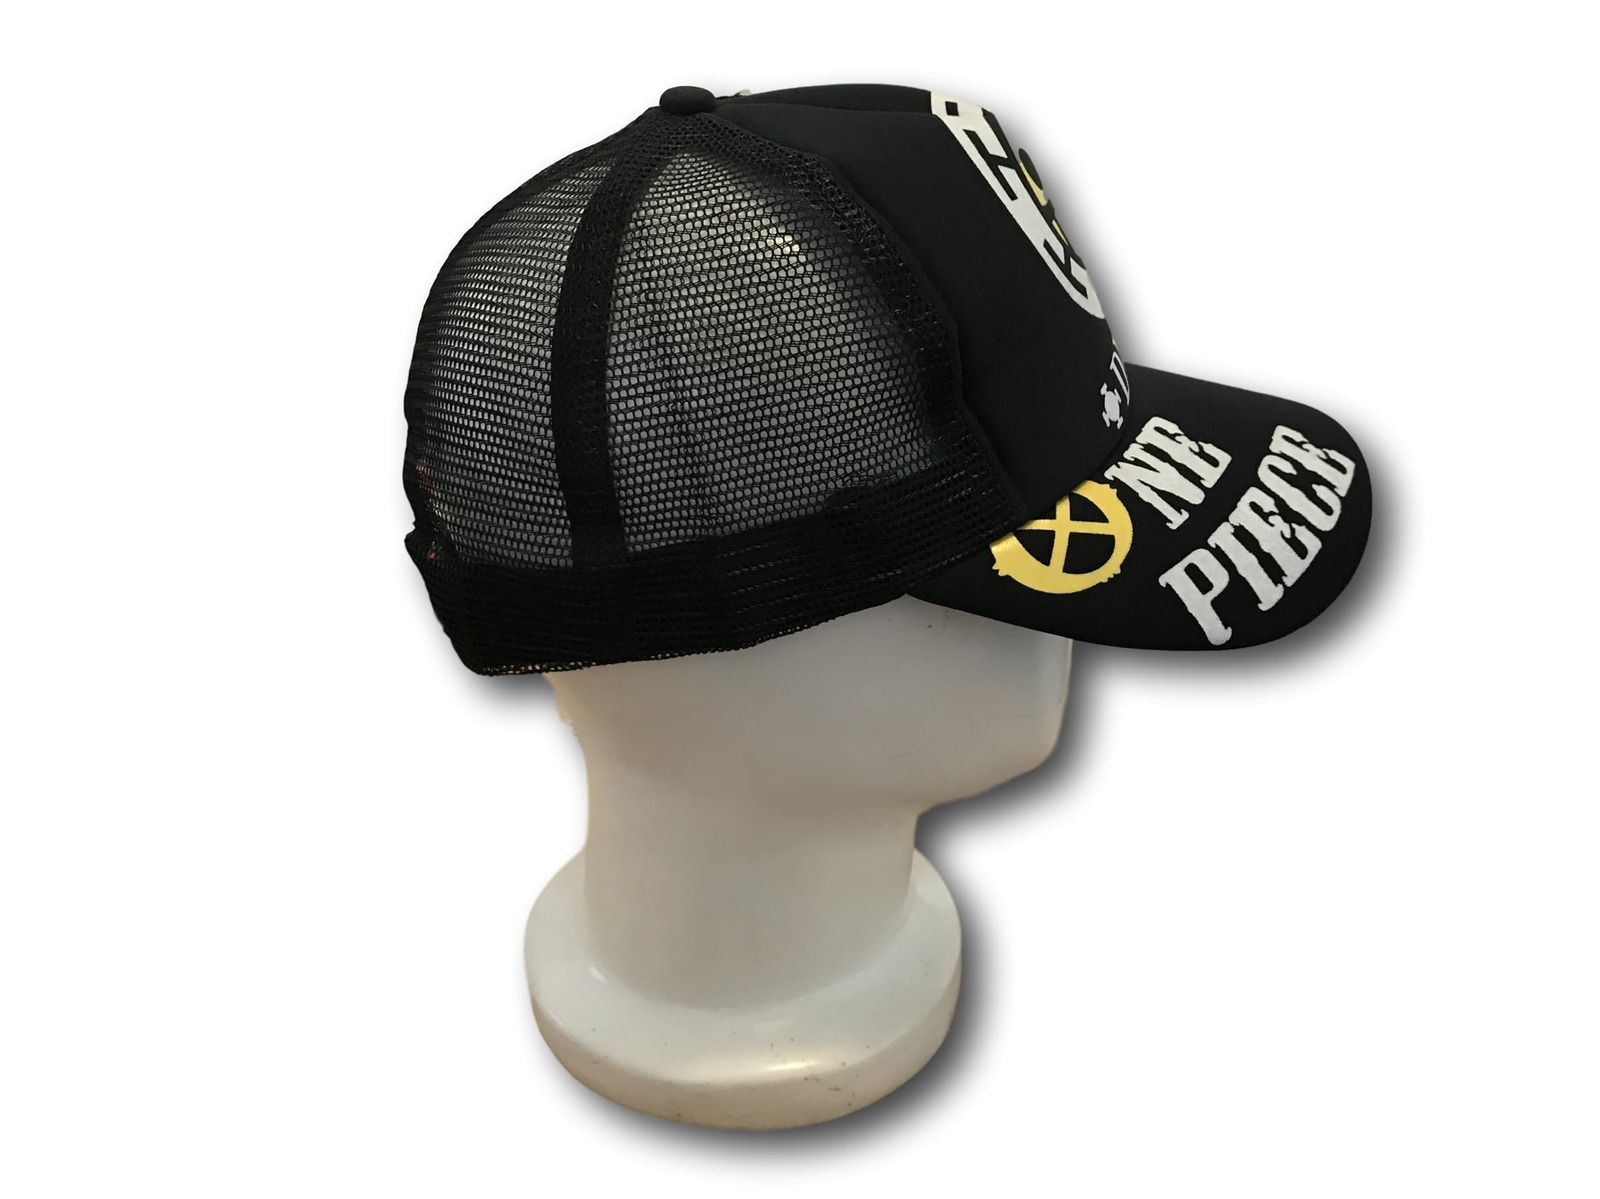 ... Anime One Piece Trafalgar Law Sign Skull Head Baseball Cap Sunhat  Cosplay Hat T2 ... 99d758f714a2